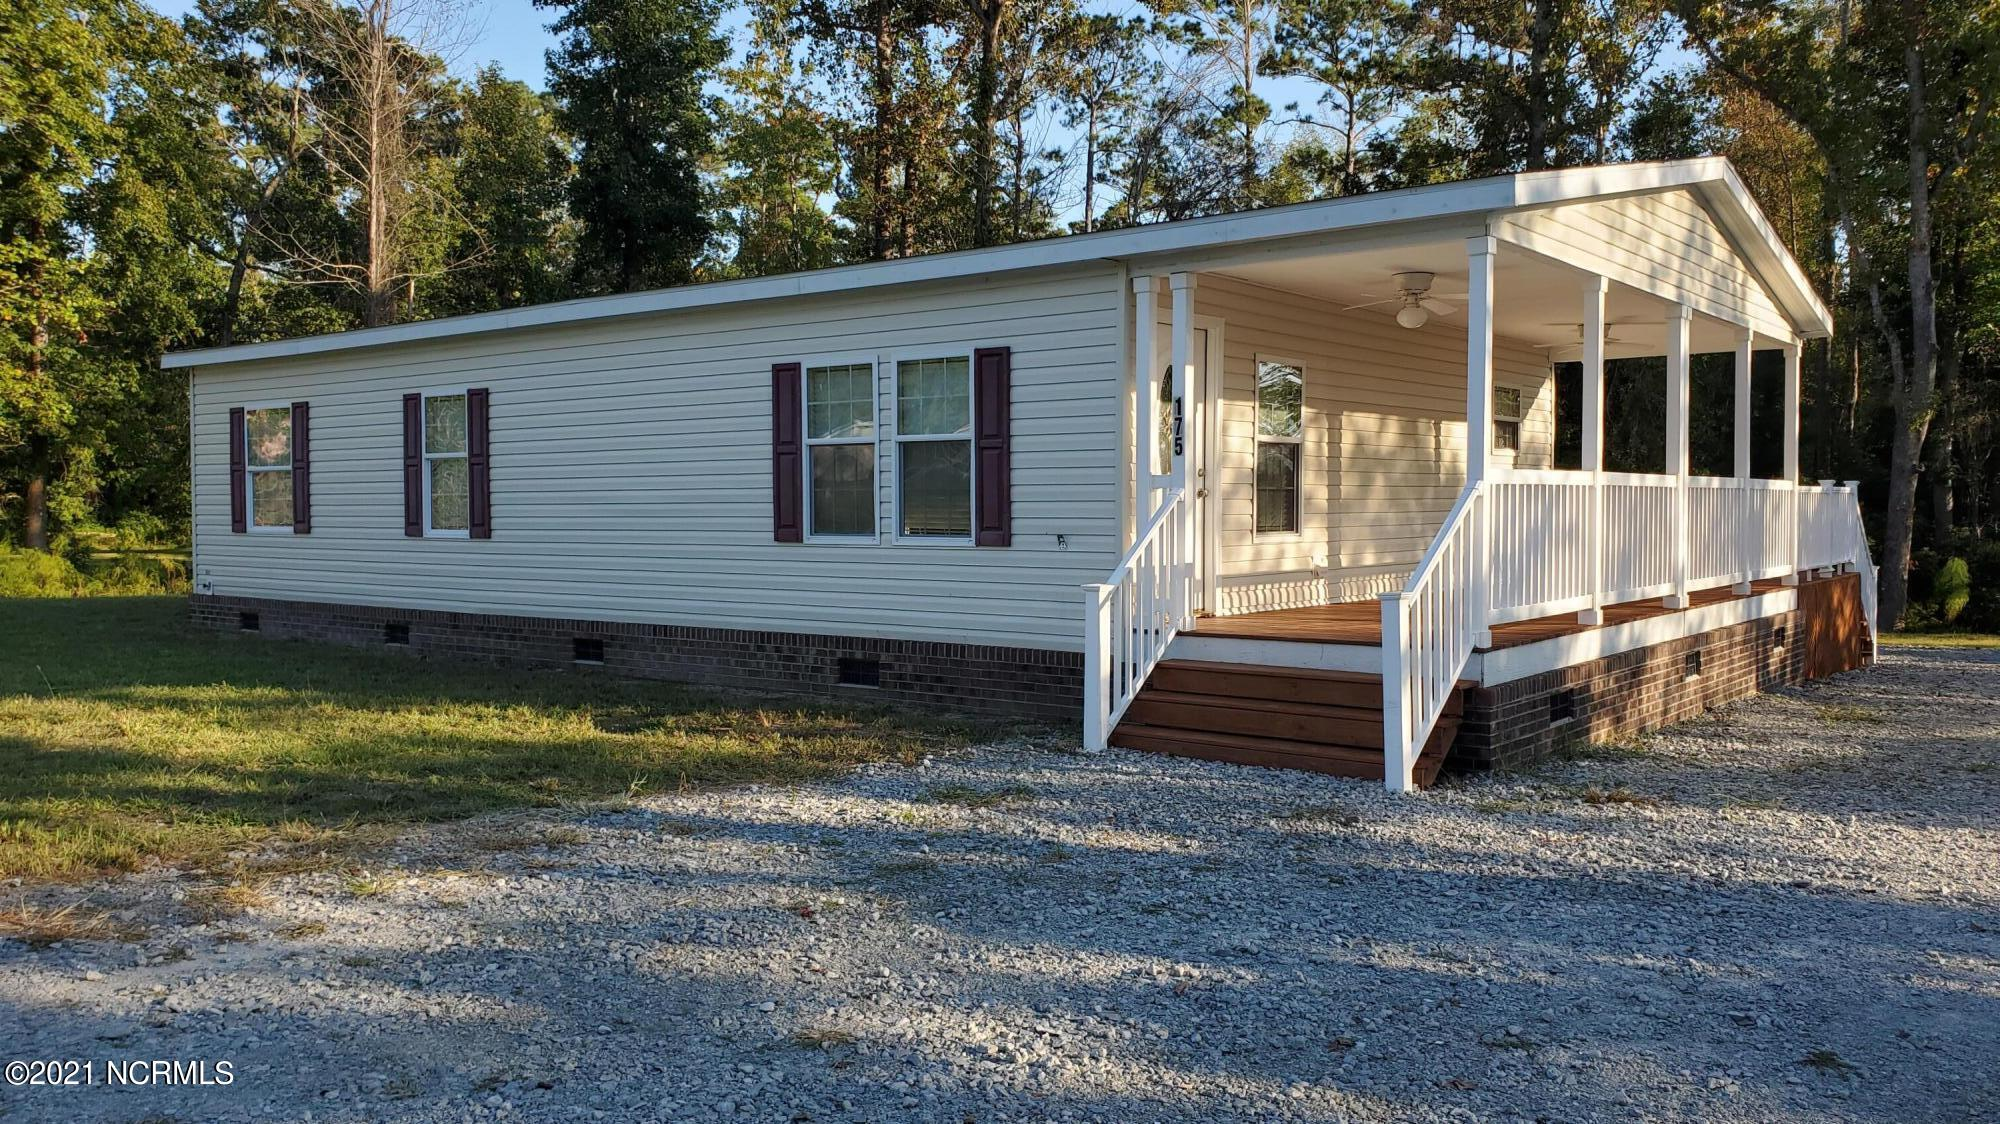 Updated 3 bedroom, 2 bath mobile home with new flooring throughout. Water view from porch and deck. Move in ready!